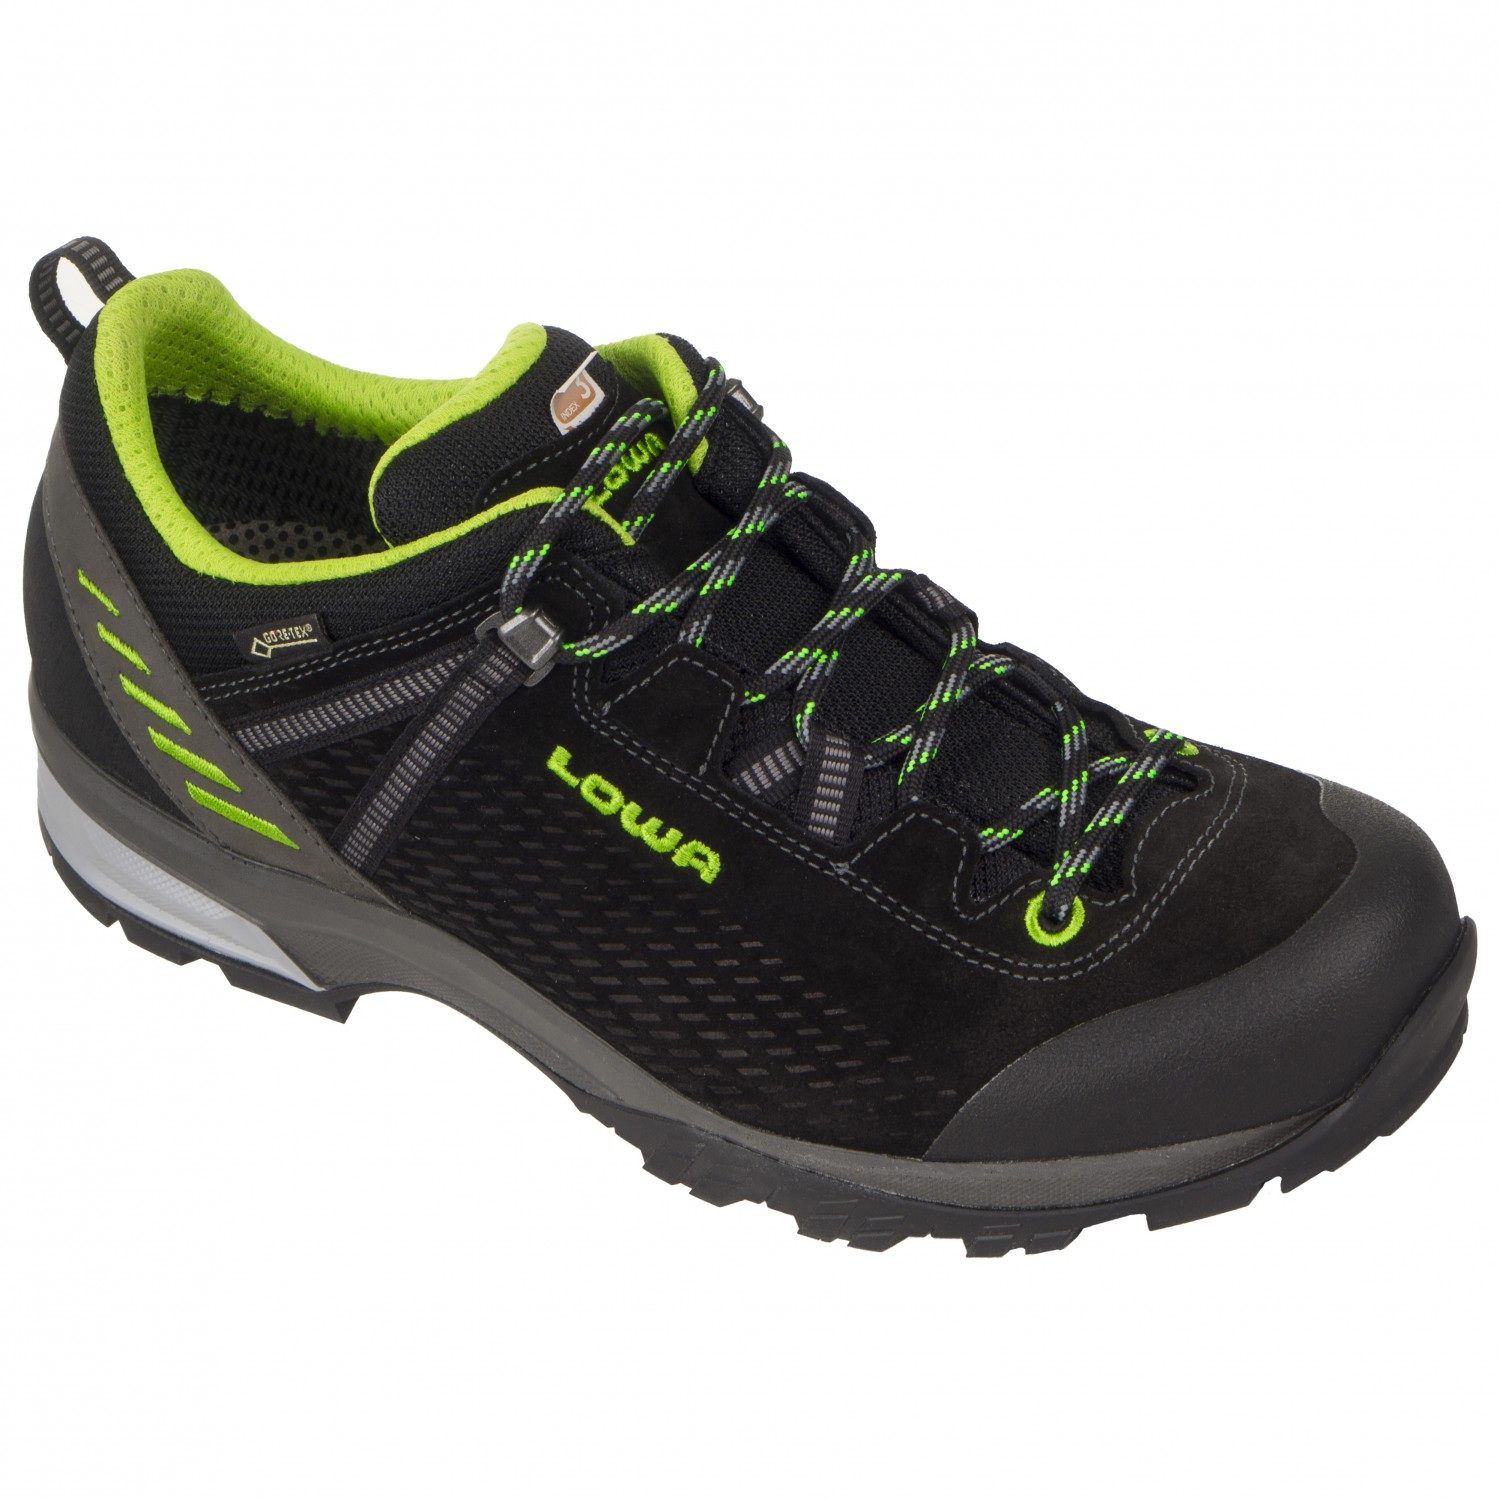 factory authentic reasonably priced wholesale Lowa - Arco GTX Lo - Multisport shoes - Anthracite / Kiwi | 7,5 (UK)